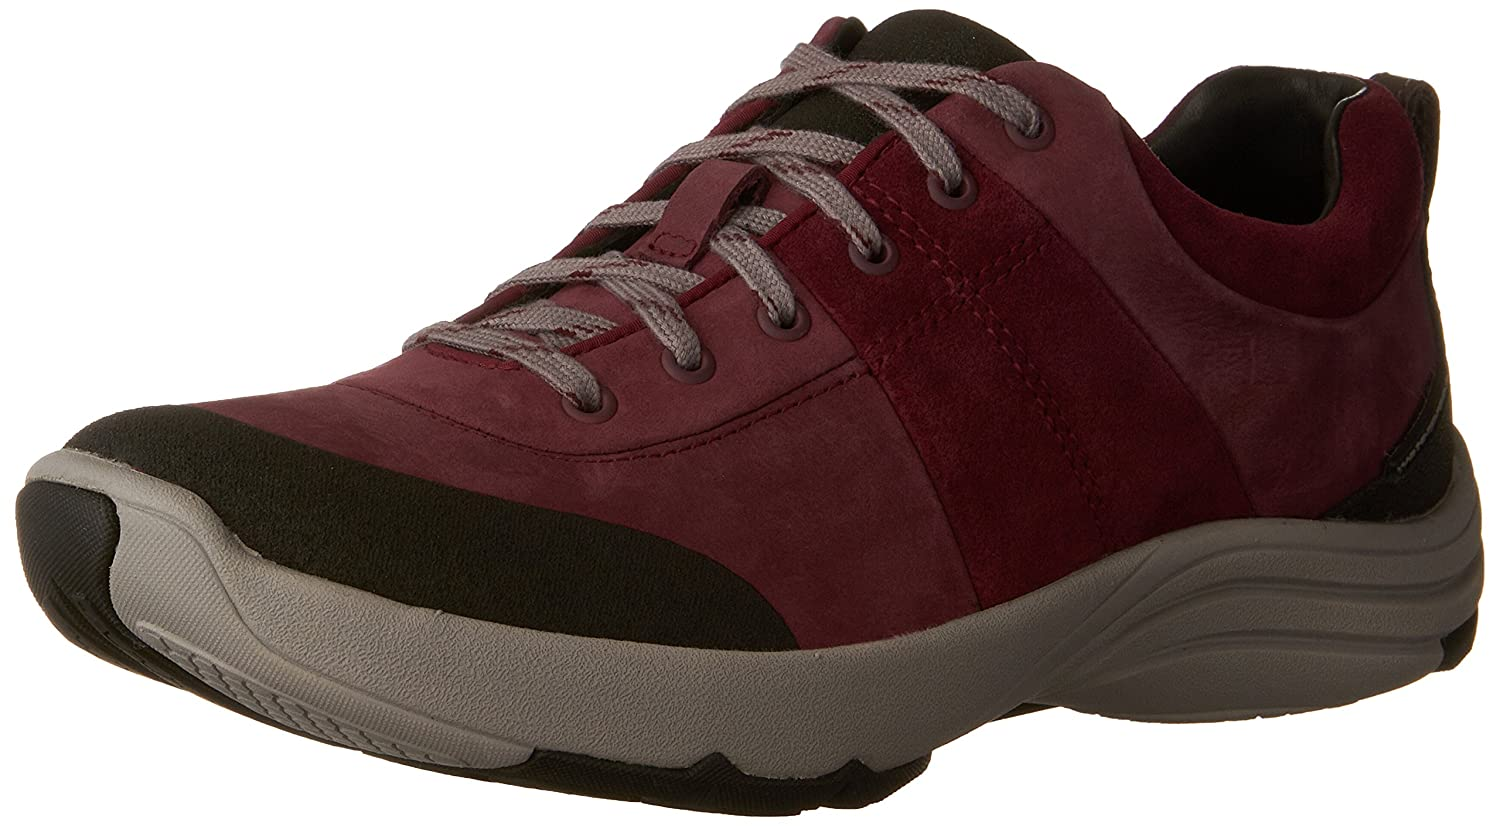 Plum Nubuck Clarks Womens Wave Andes Walking shoes